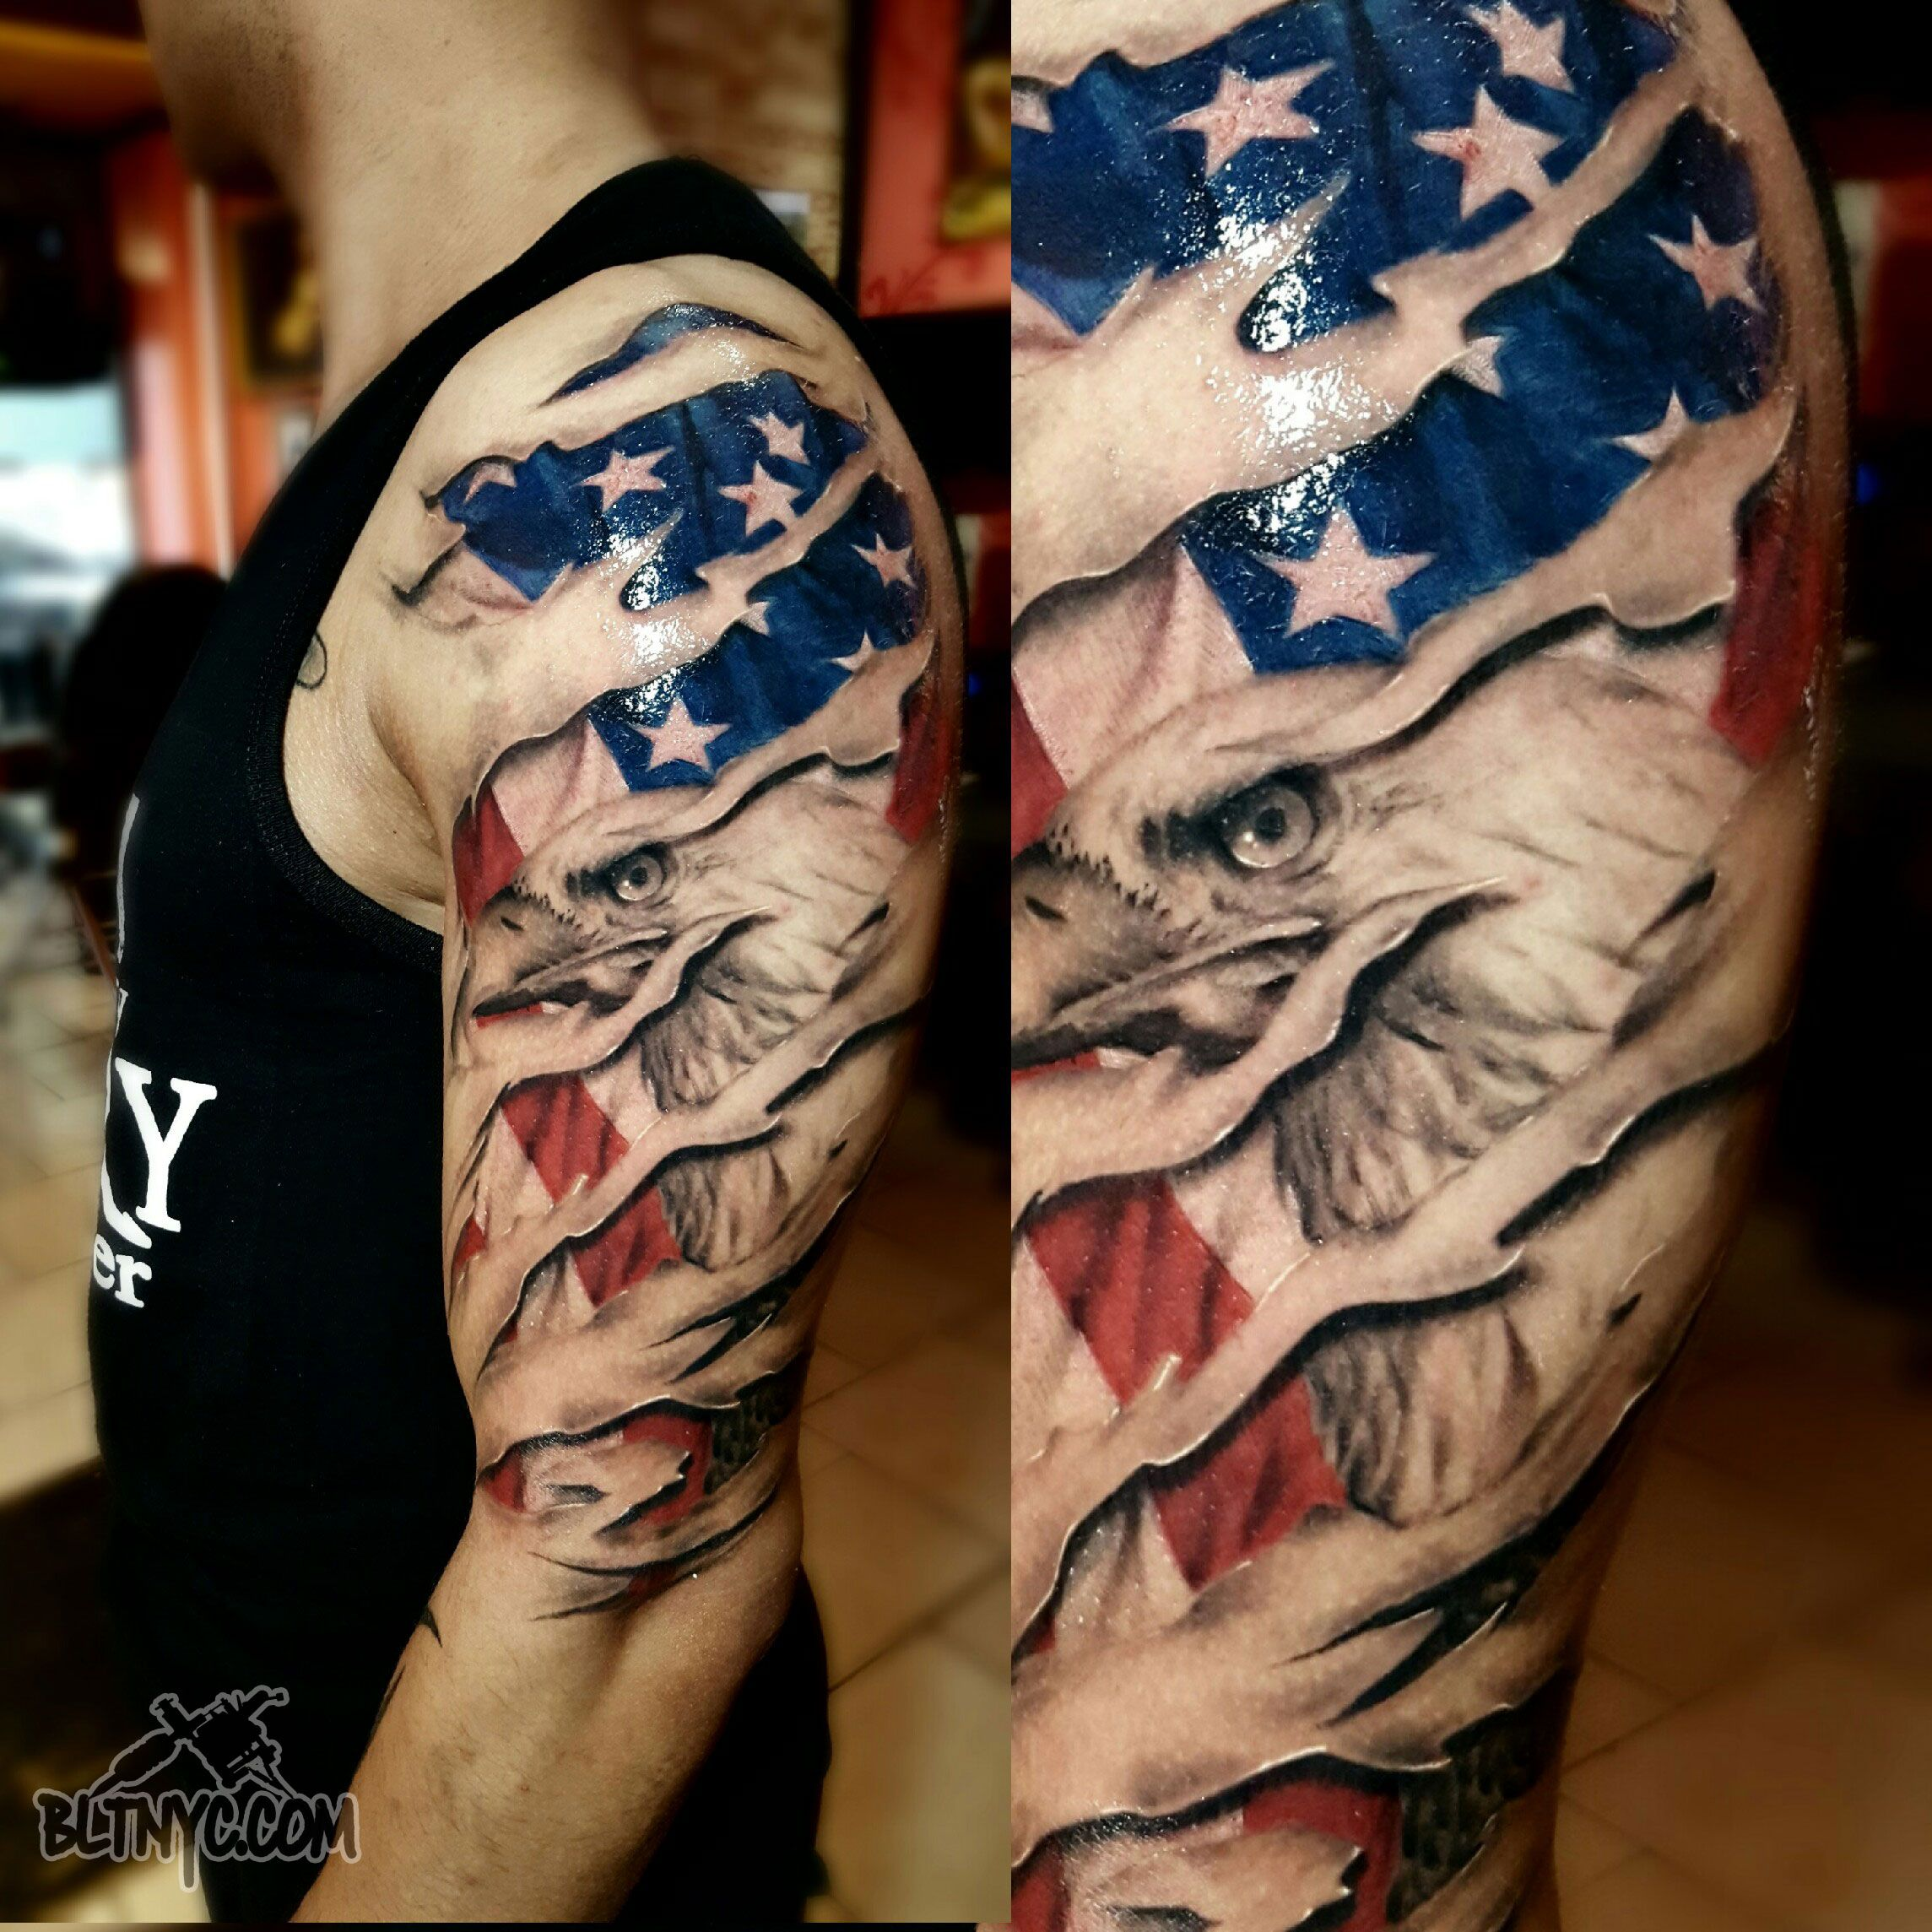 e9ec865d828ac Shredded Skin with American Flag and Eagle Tattoo by Carlos at BLTNYC Tattoo  Shop Astoria Queens #americanflag #patriotic #eagletattoo #tattoo